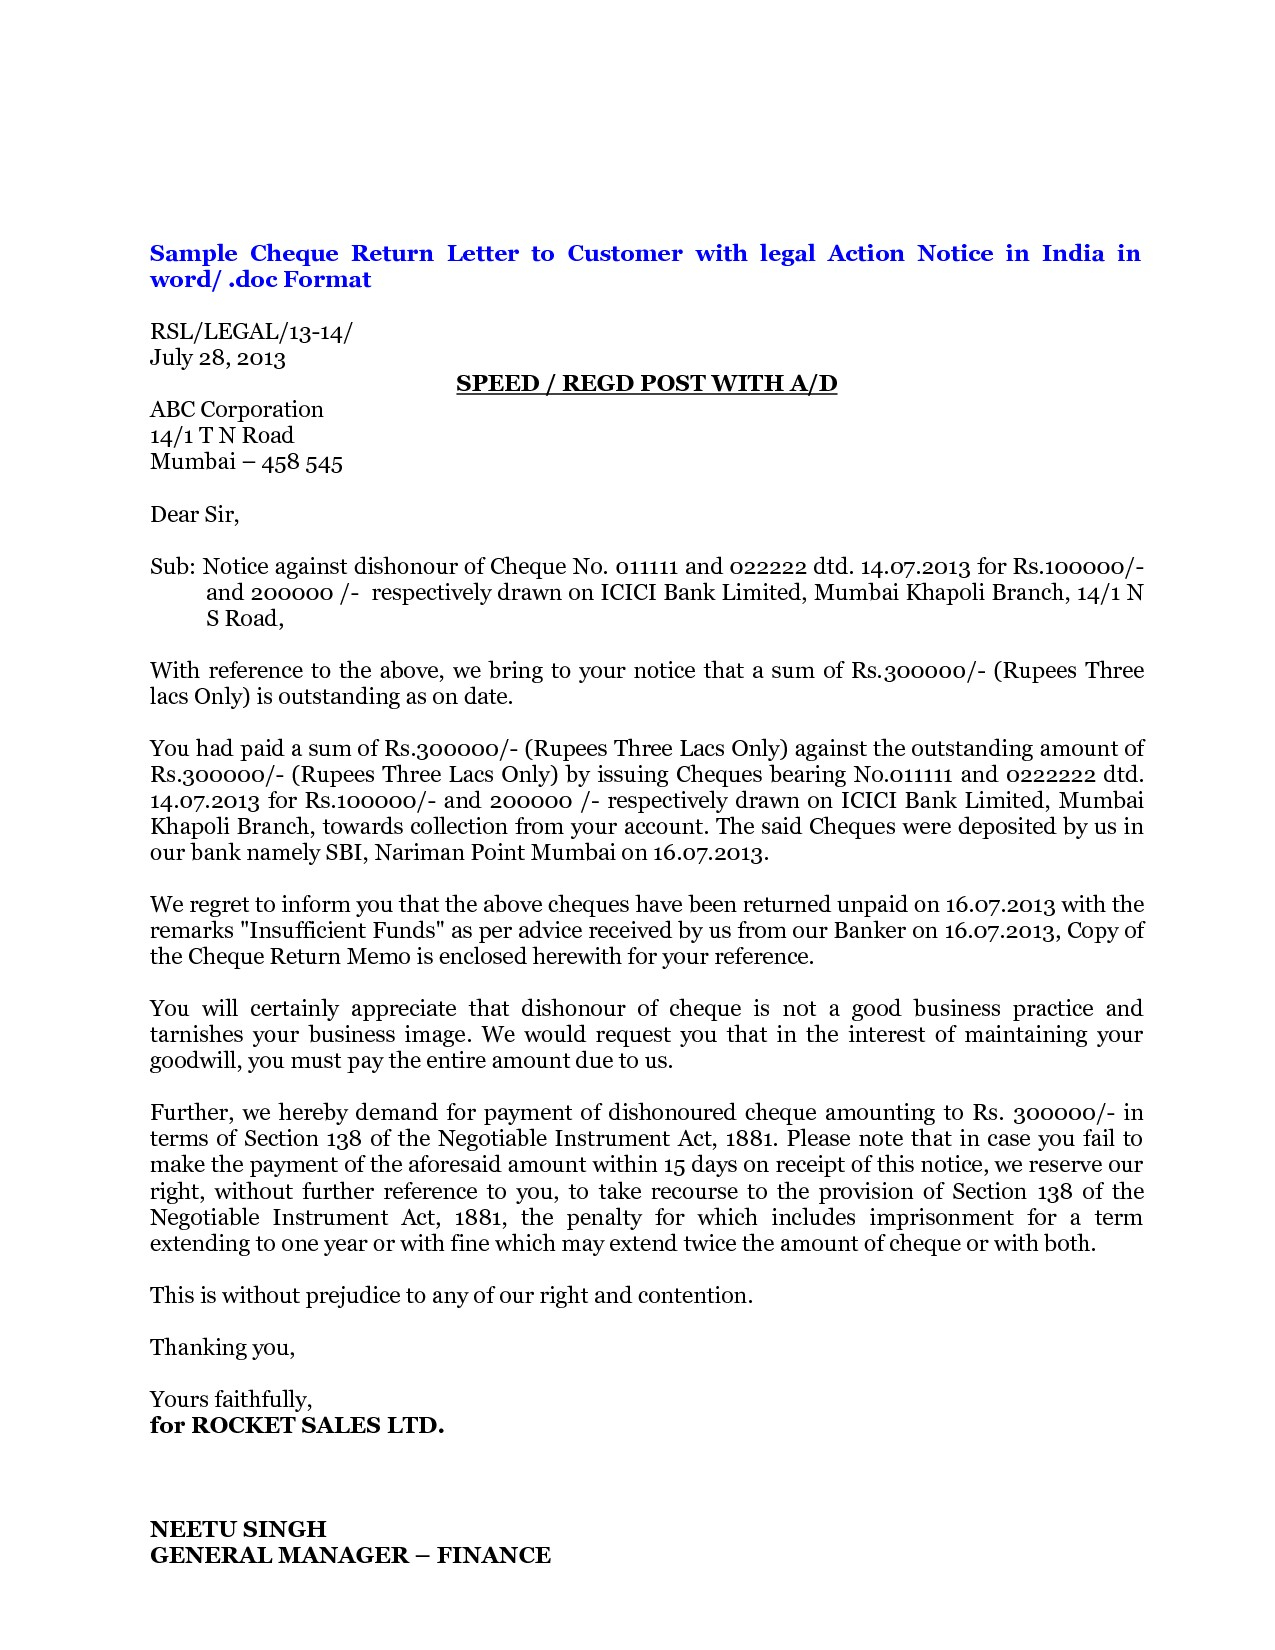 Cease and Desist Creditor Letter Template - format A Legal Letter Best Sample Legal Letter Advice Best Lawyer